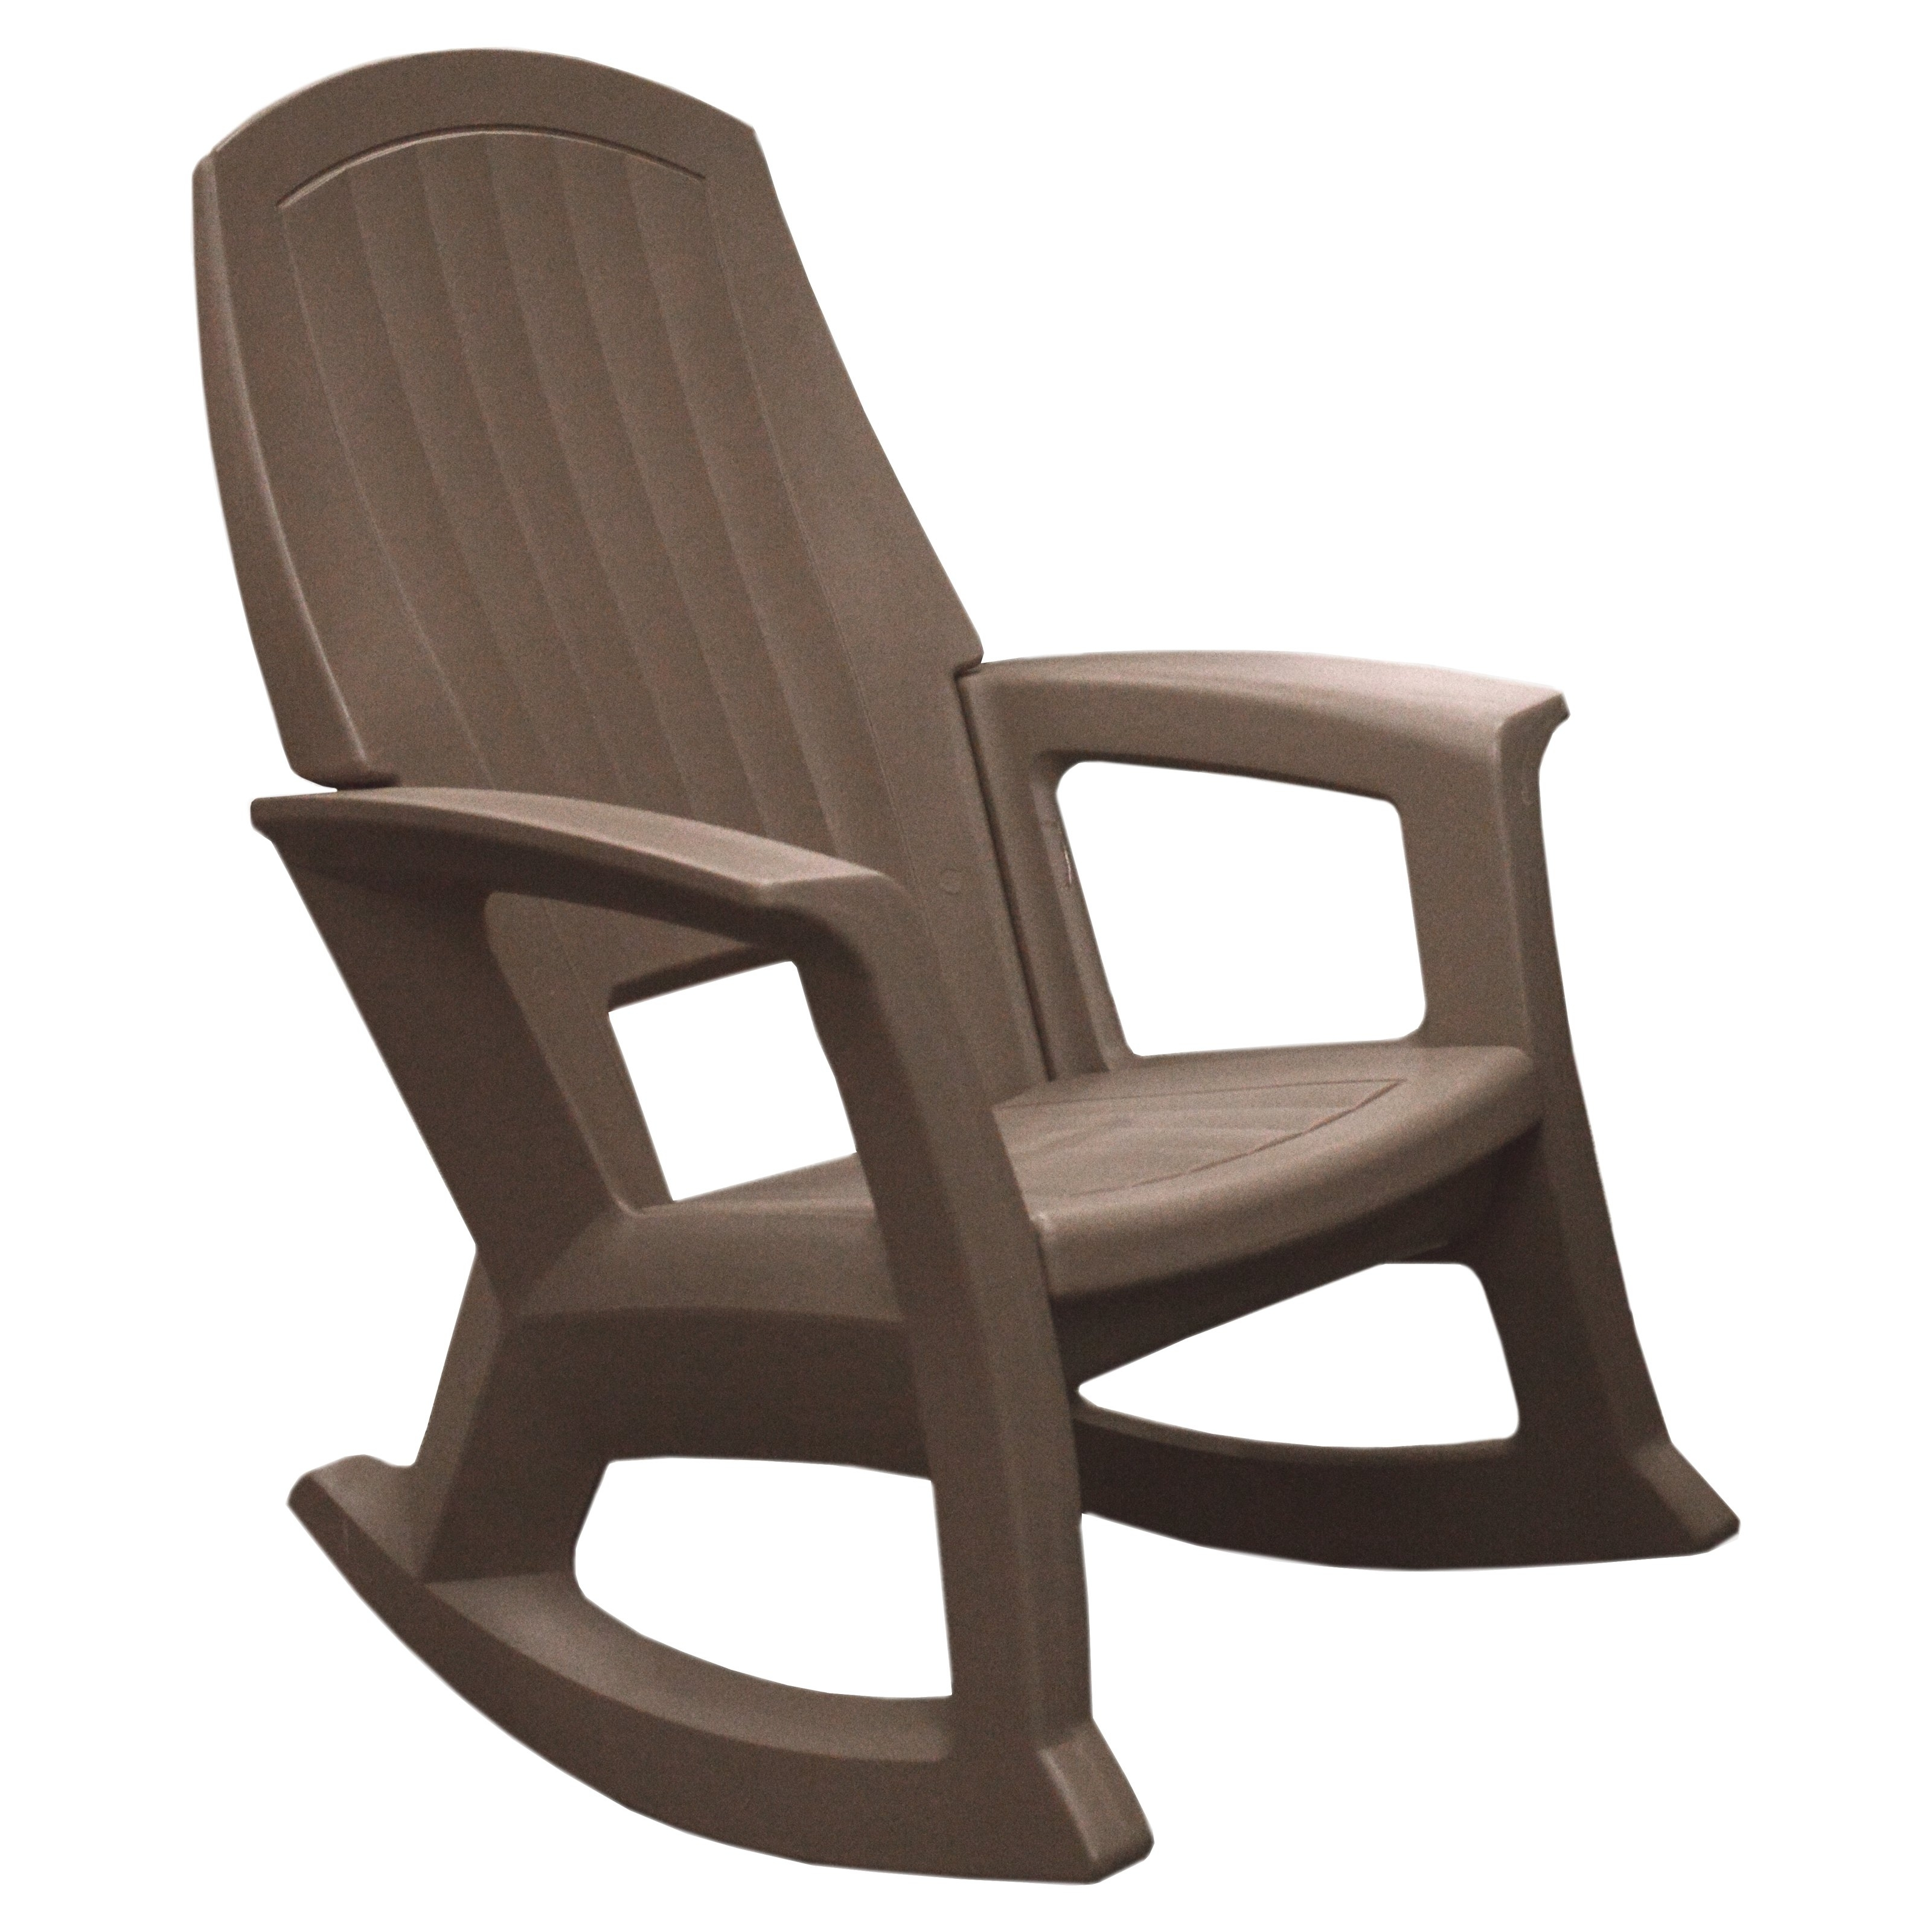 Well Liked White Resin Patio Rocking Chairs Throughout Semco Outdoor Patio Resin Rocking Chair – Outdoor Designs (View 9 of 20)